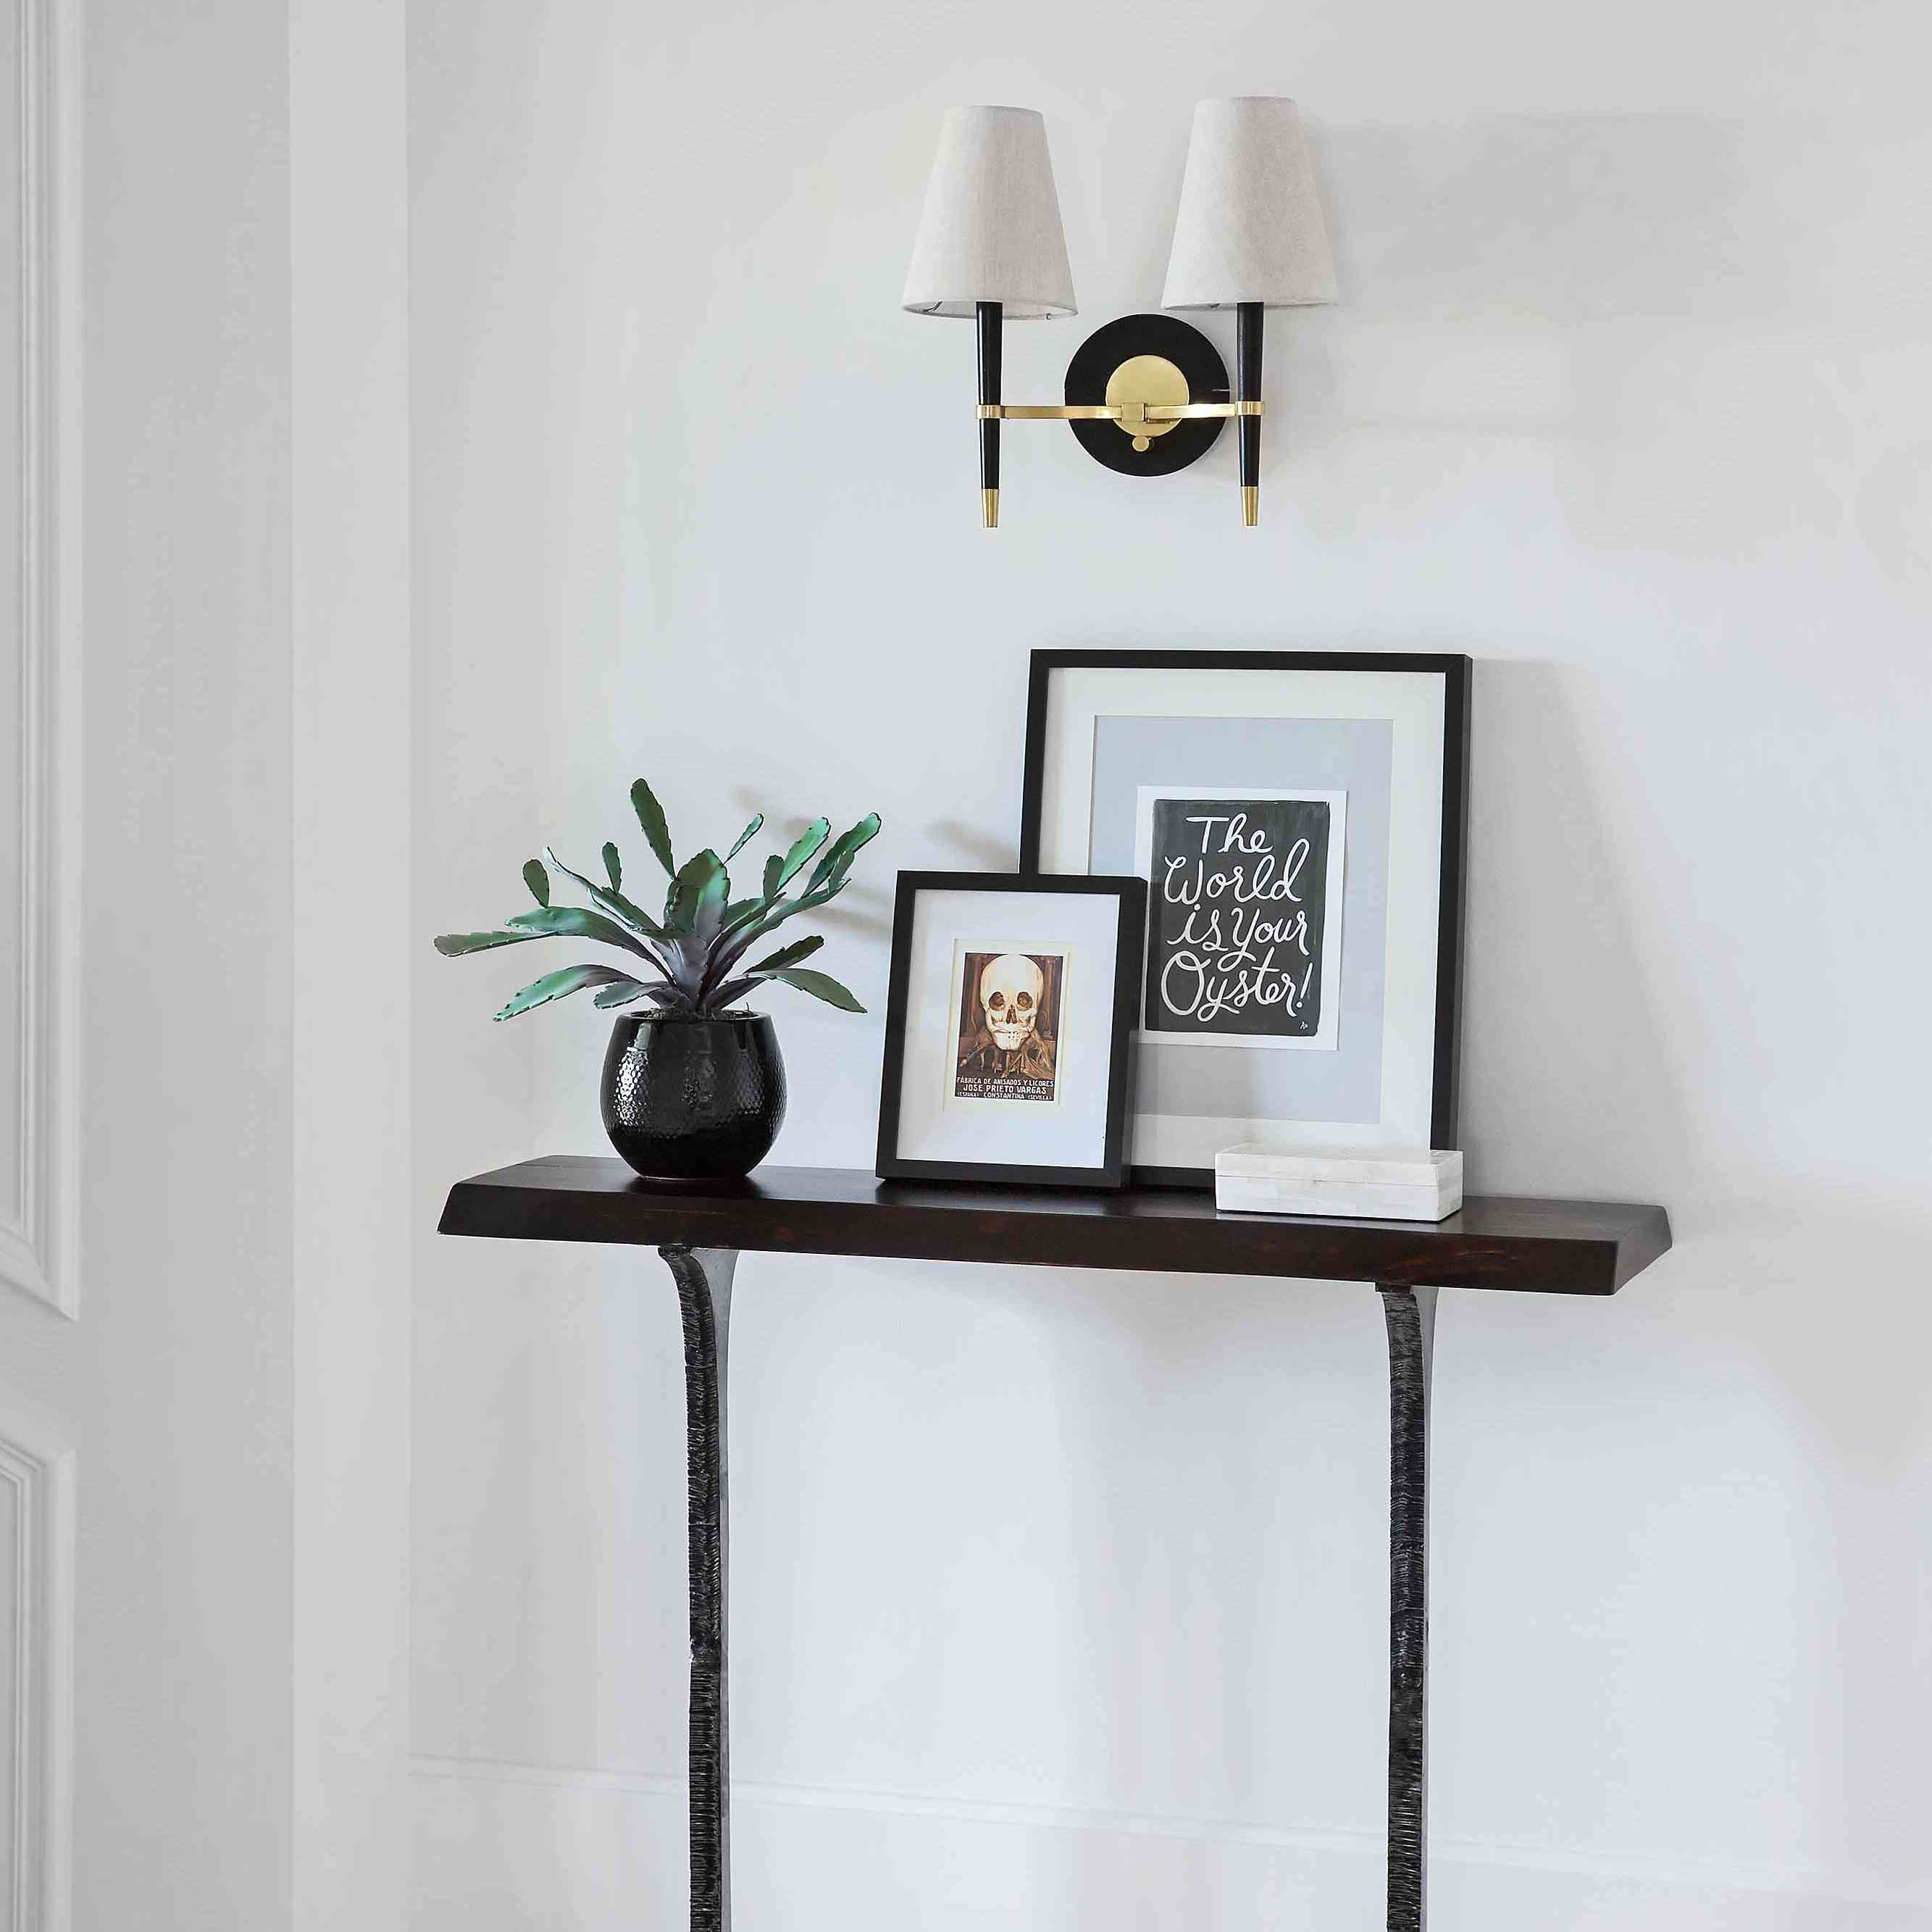 Styled console features a plant, framed art, sconce lighting